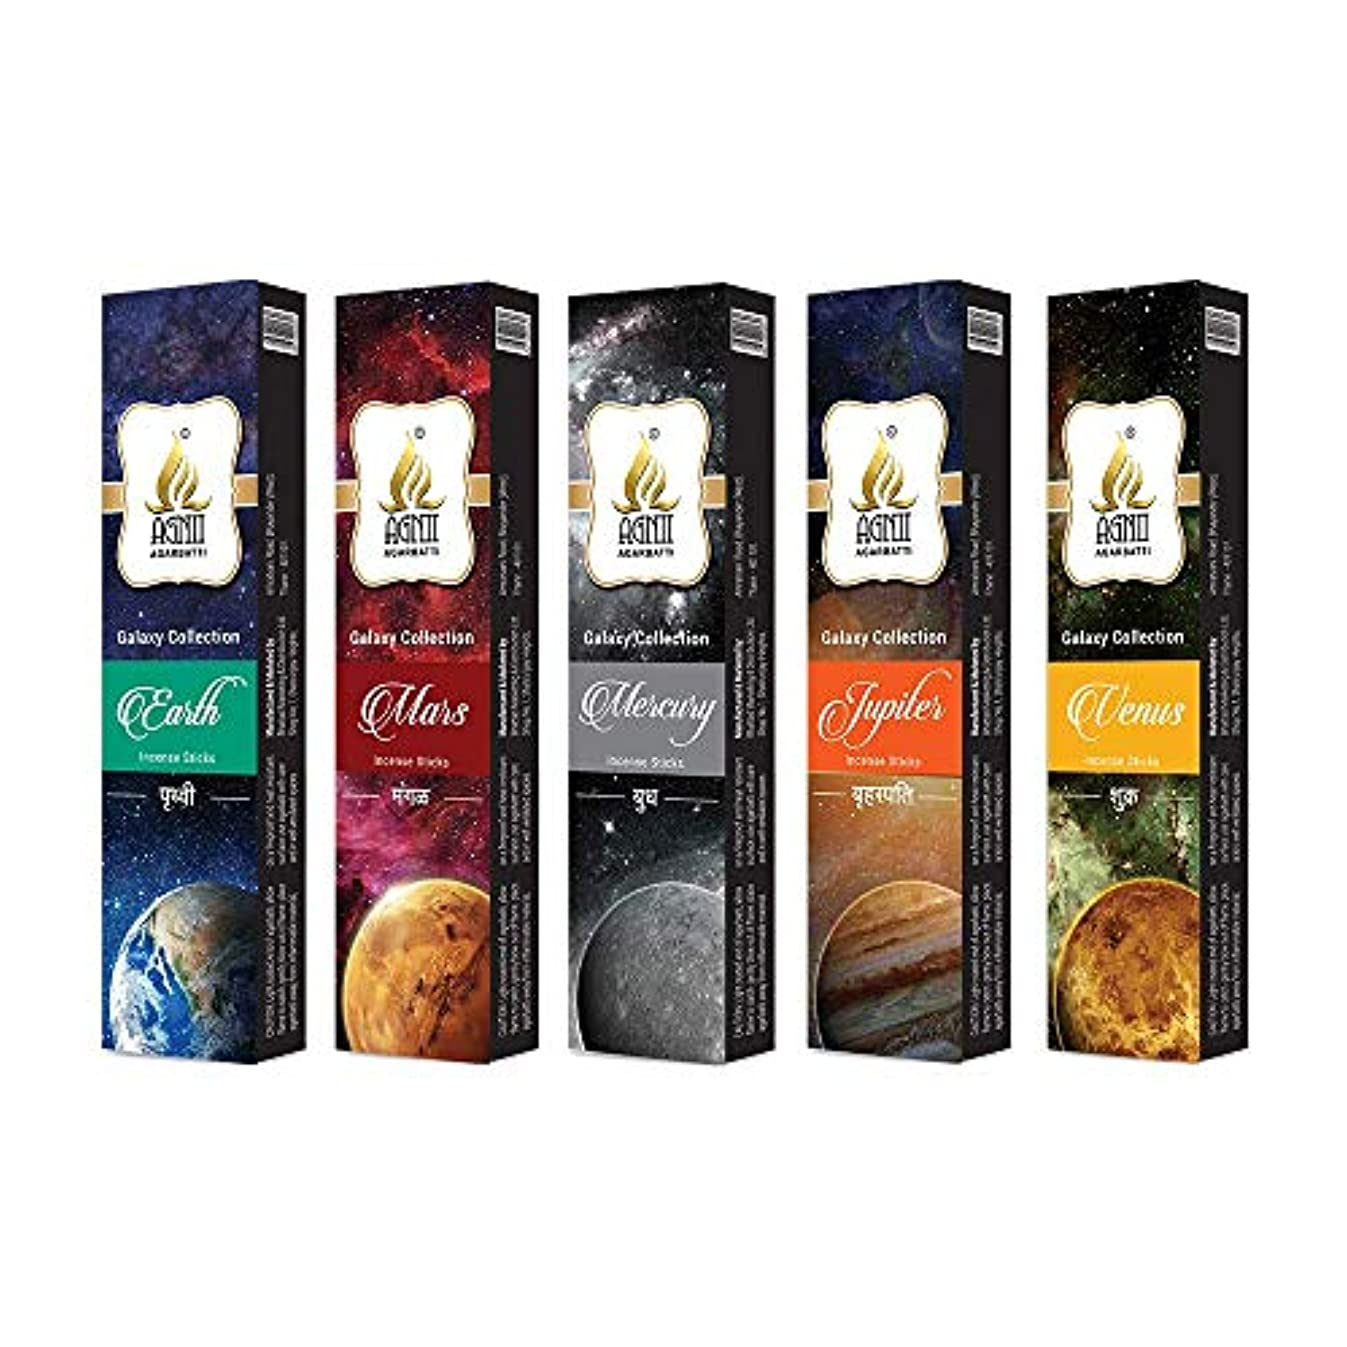 廃止かみそりモルヒネAGNII AGARBATTI Galaxy Collection Incense Sticks (100 GRM_Brown) Pack of 9